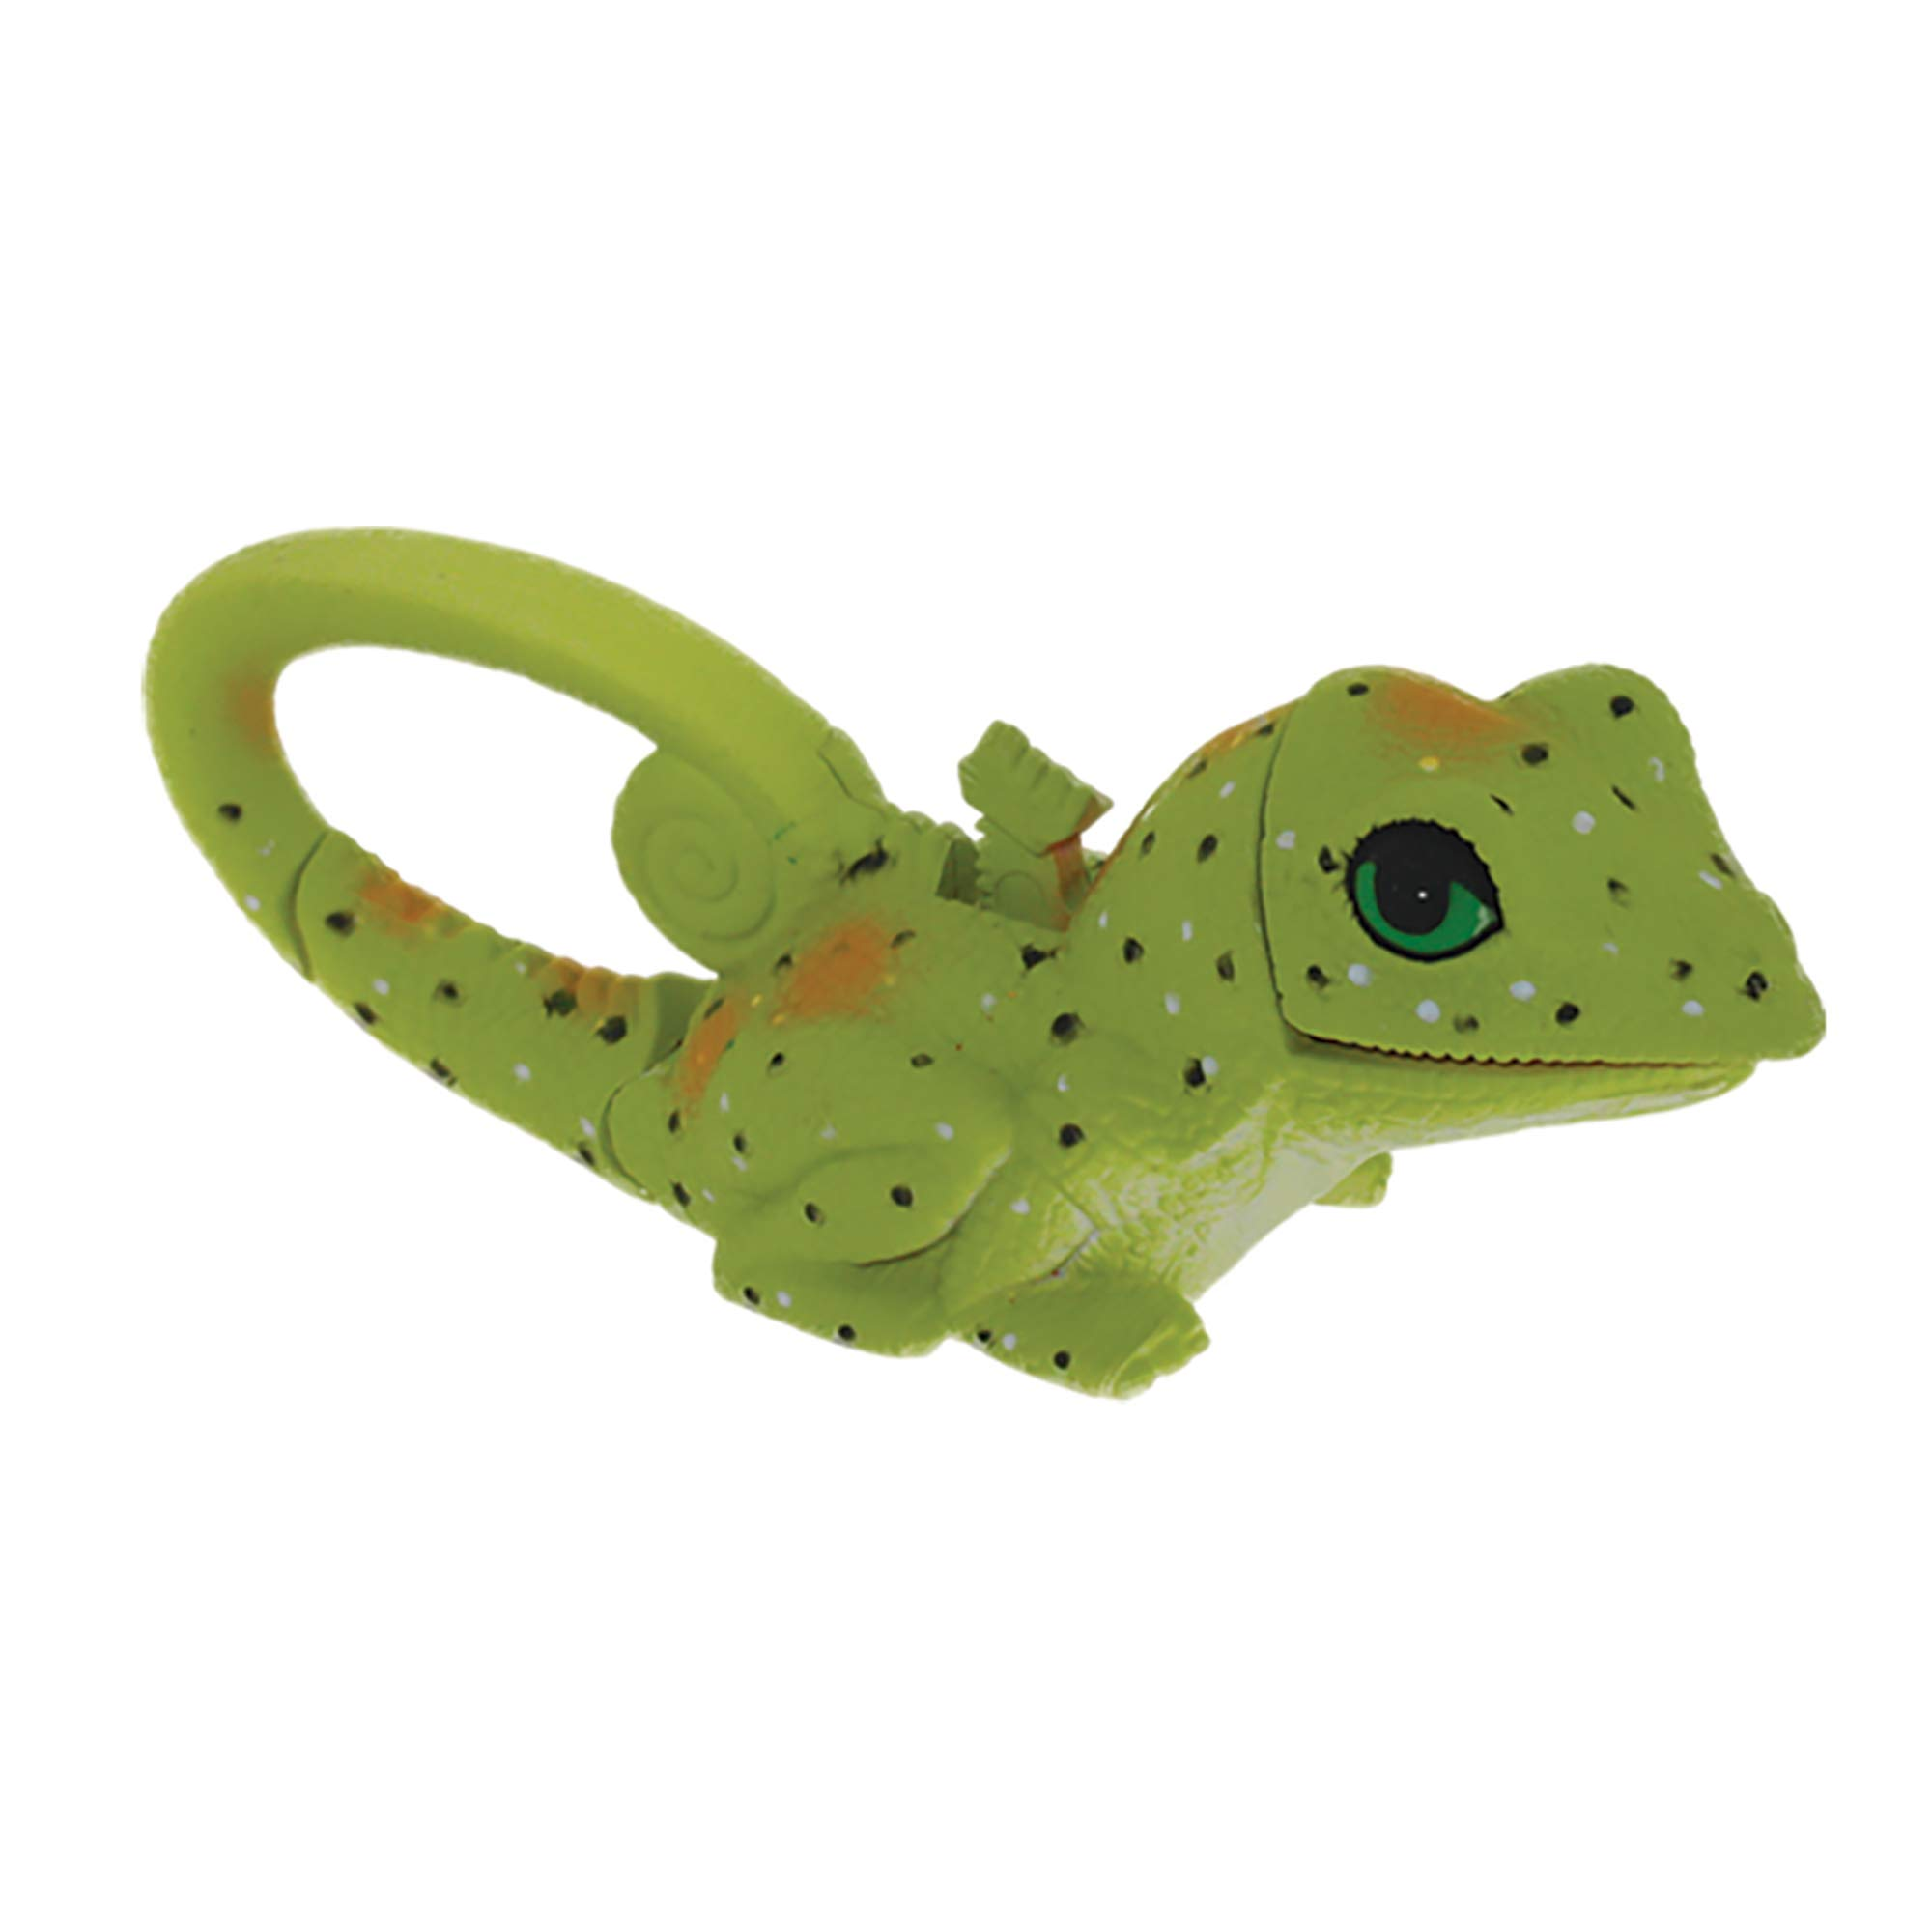 Sun Company Lifelight Animal Carabiner Flashlight - Green Lizard | Cute Animal Keychain Lights